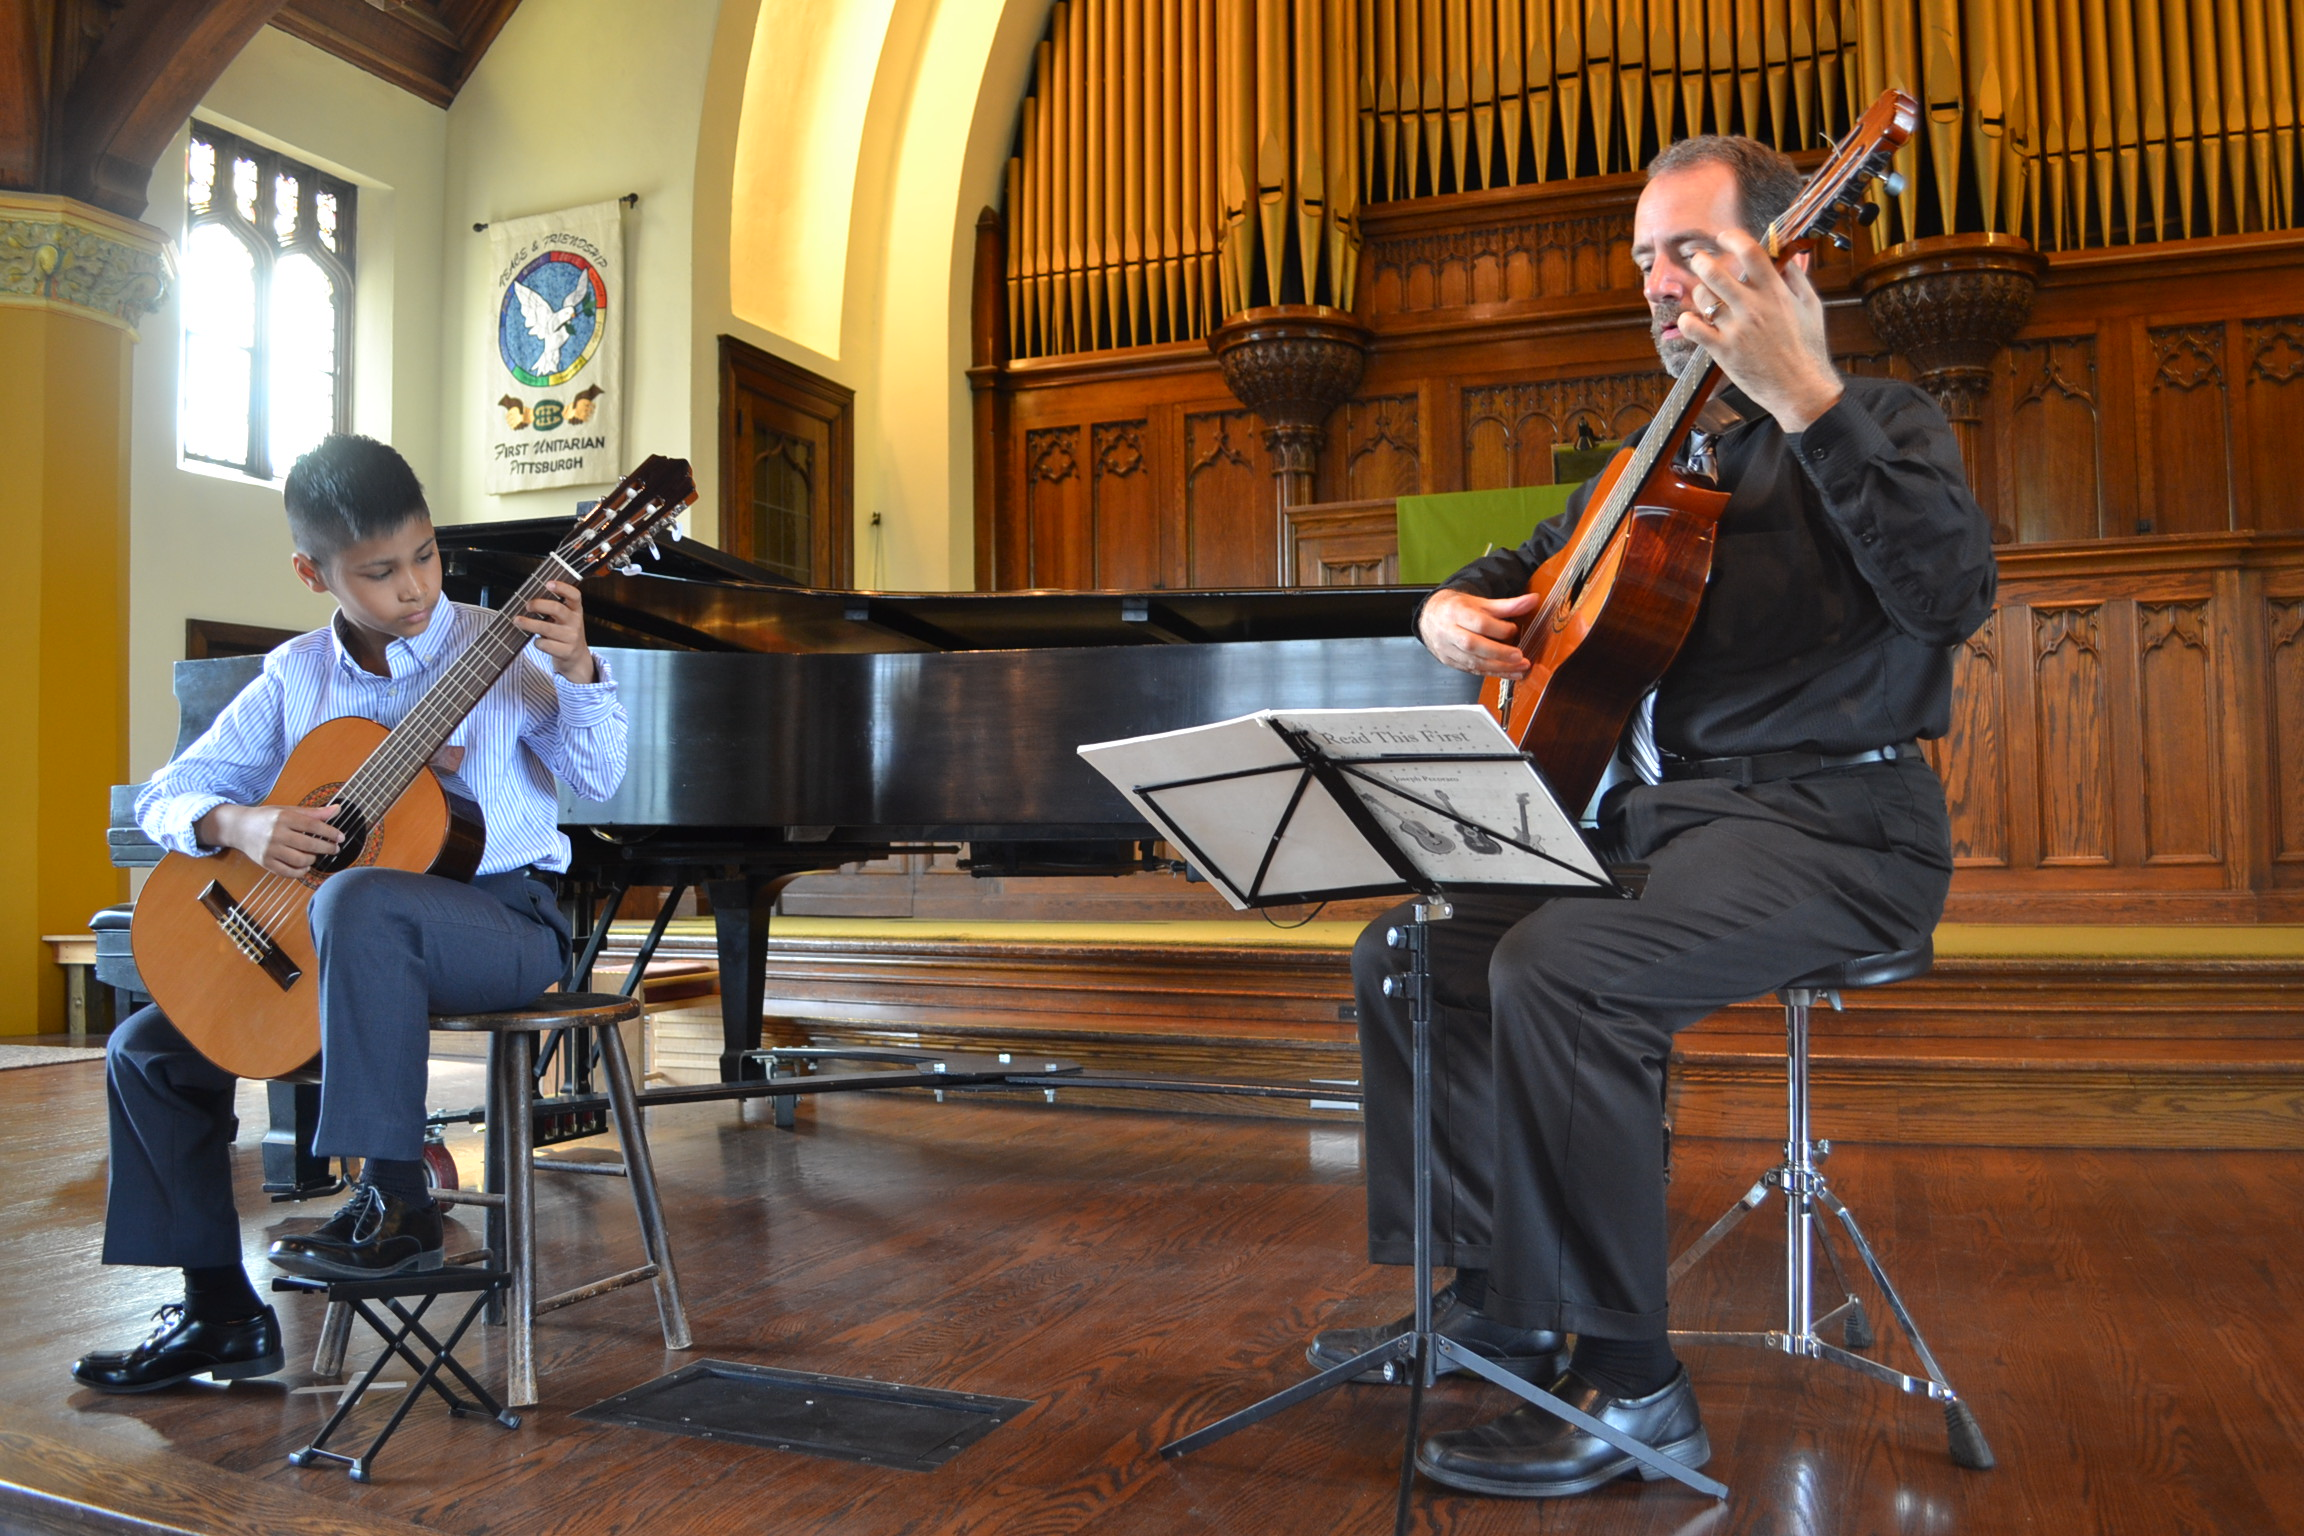 Graham Kunz and Mr. Mark perform at the Solo Recital